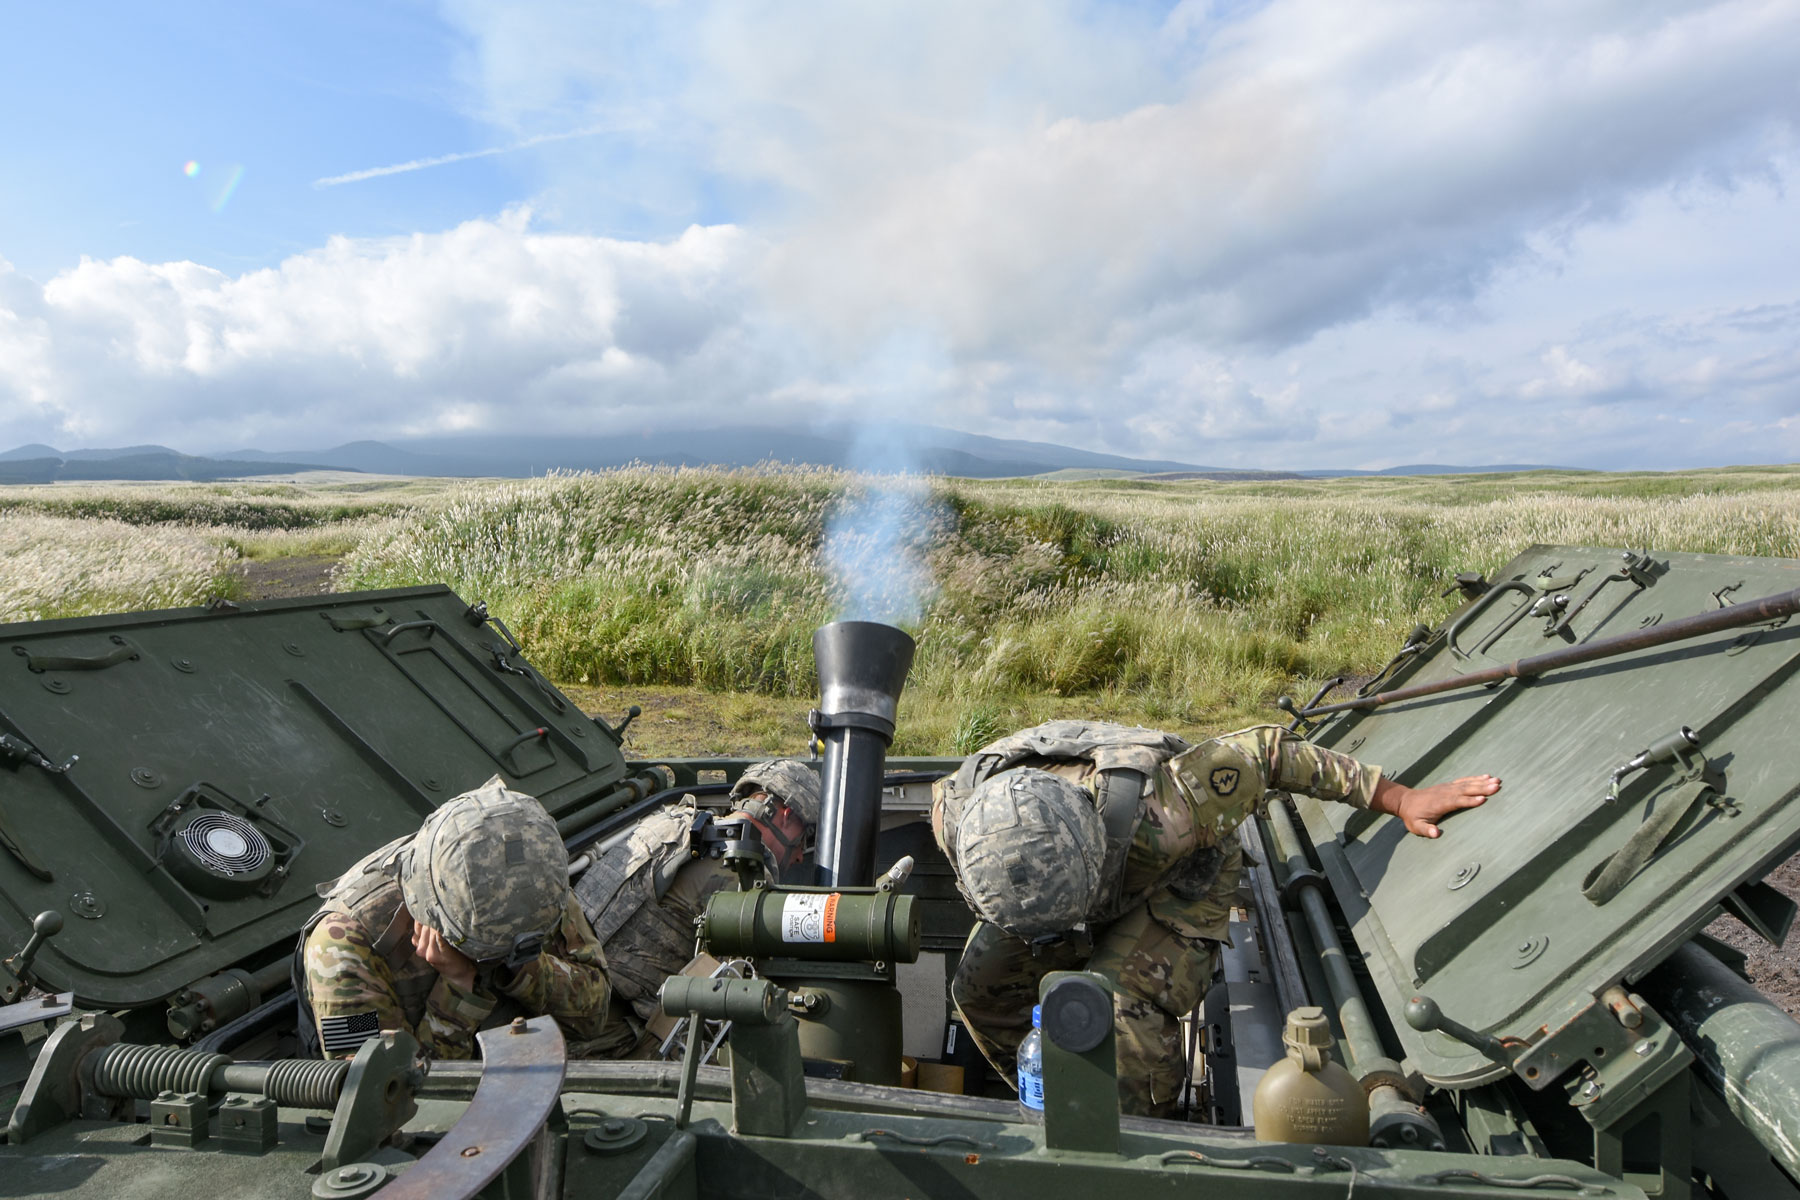 U.S. Army Soldiers assigned to Headquarters and Headquarters Company, 3rd Battalion, 21st Infantry Regiment, 1st Stryker Brigade Combat Team, 25th Infantry Division, conduct a live fire exercise with a RMS6L 120mm mortar system on a M1129 Mortar Carrier.